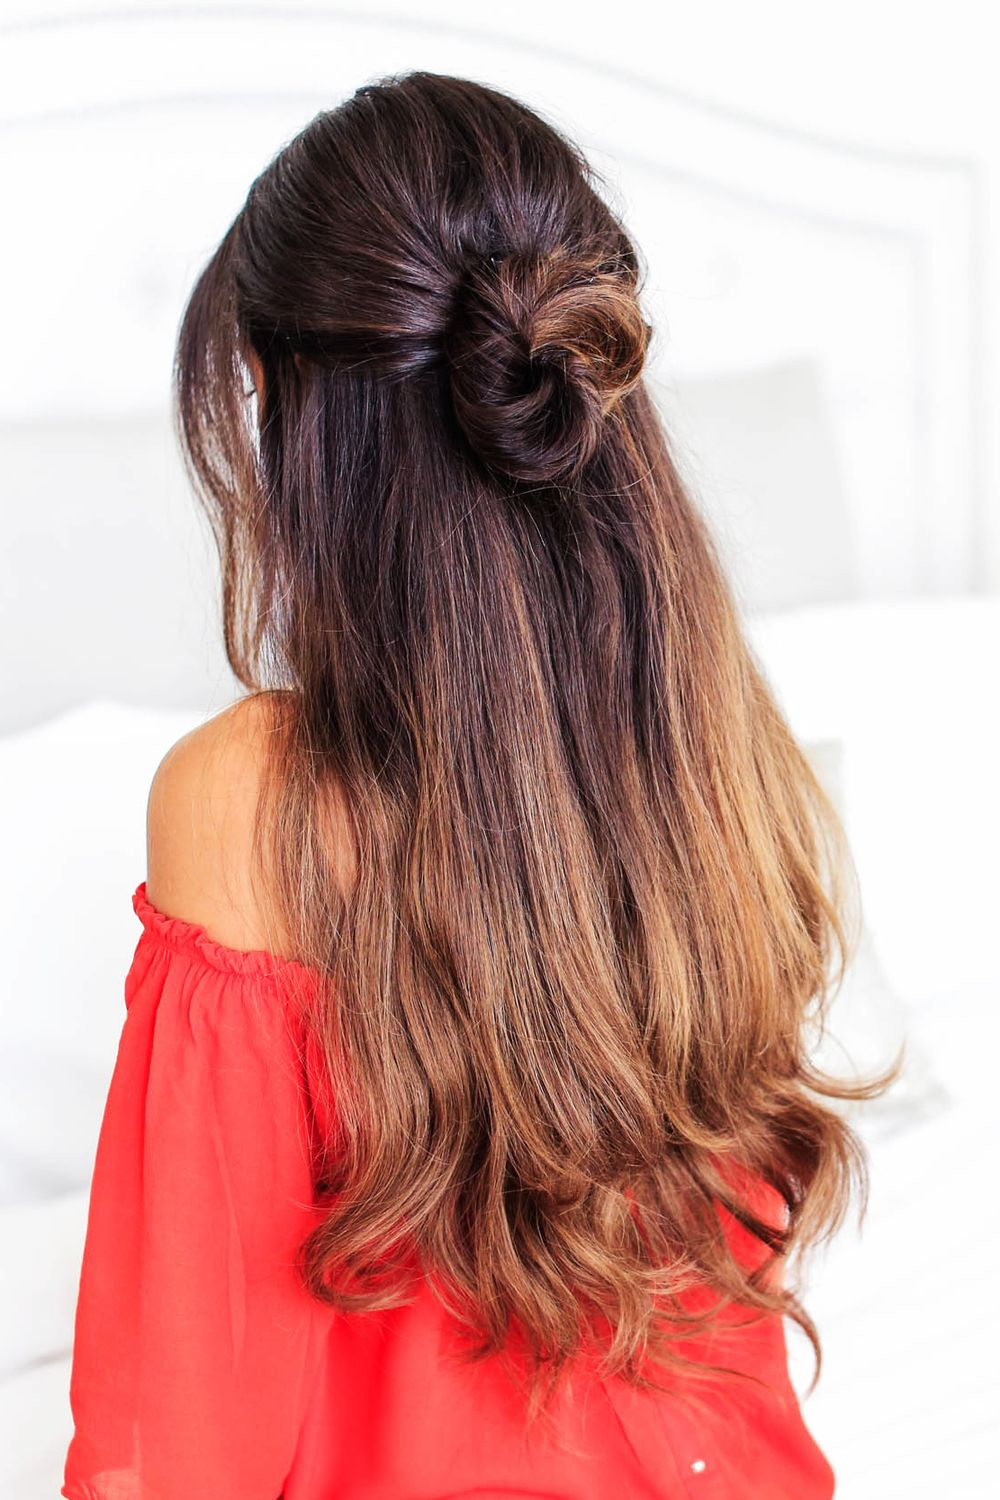 3 Lazy Hairstyles For Lazy Days Lazy Hairstyles Lazy Girl Hairstyles Easy Hairstyles